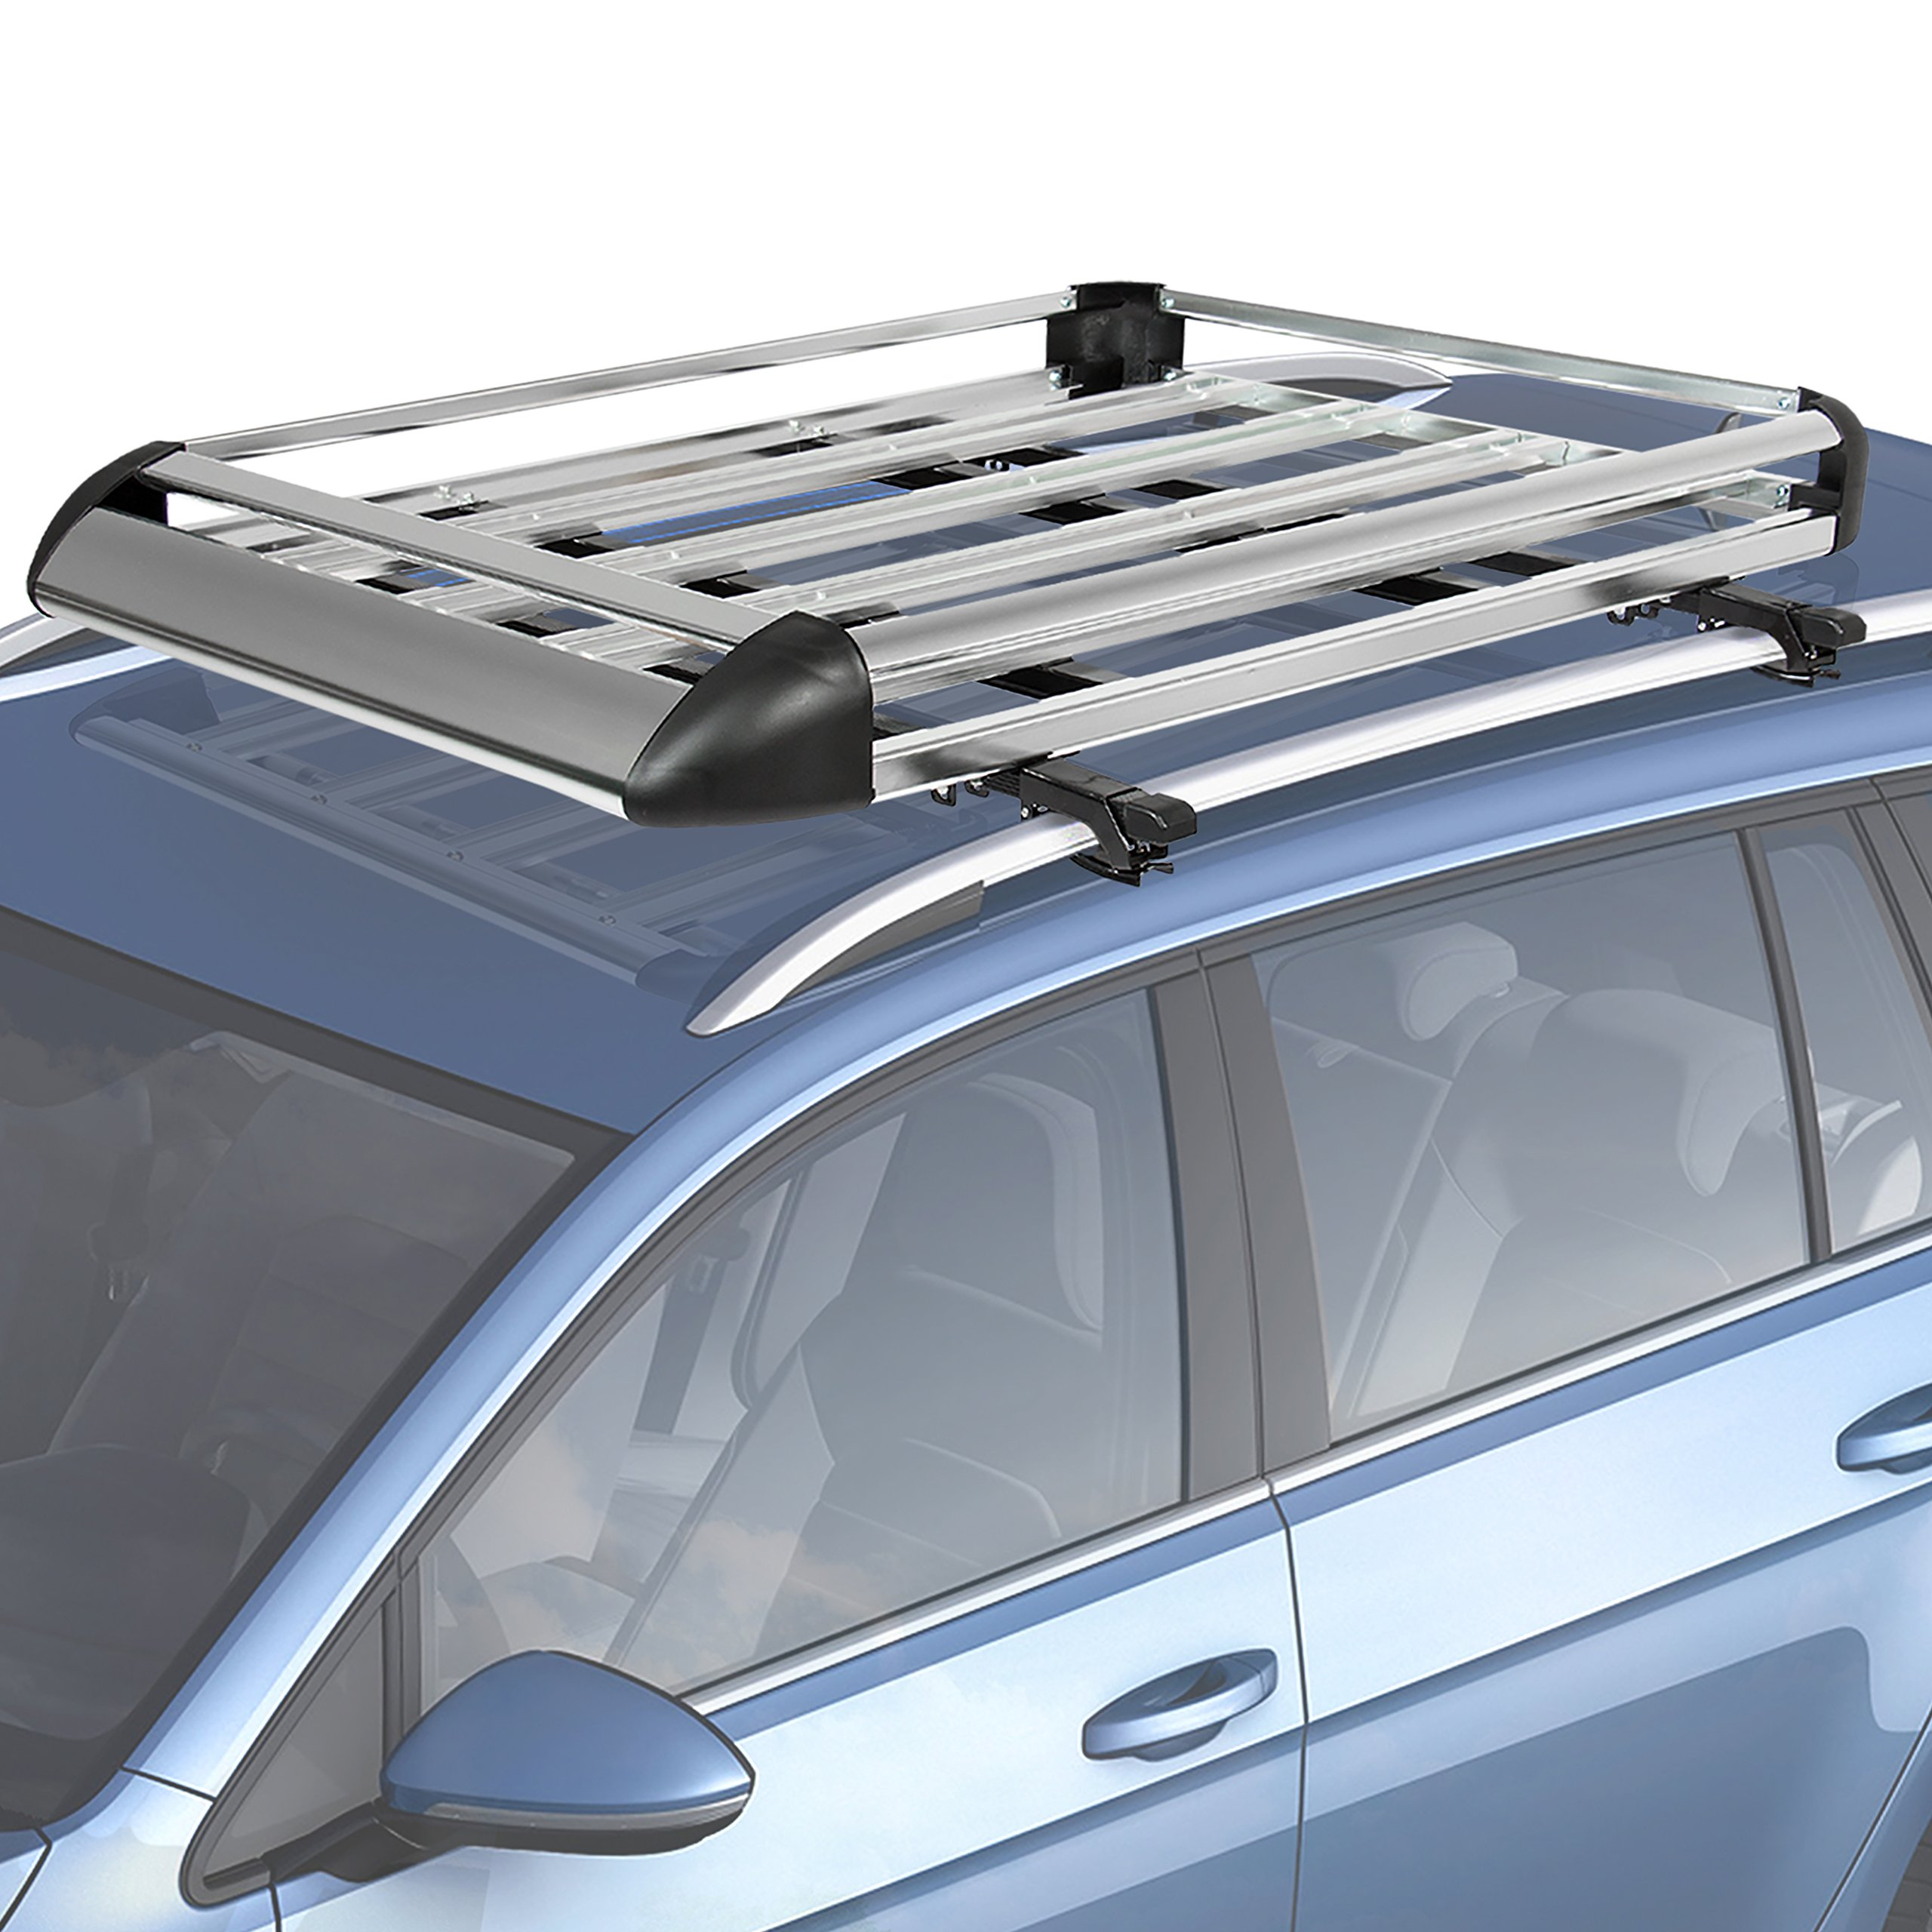 Best Choice Products 50''x38'' Aluminum Car Roof Cargo Carrier Luggage Rack Top Basket W/ Roof Bars by Best Choice Products